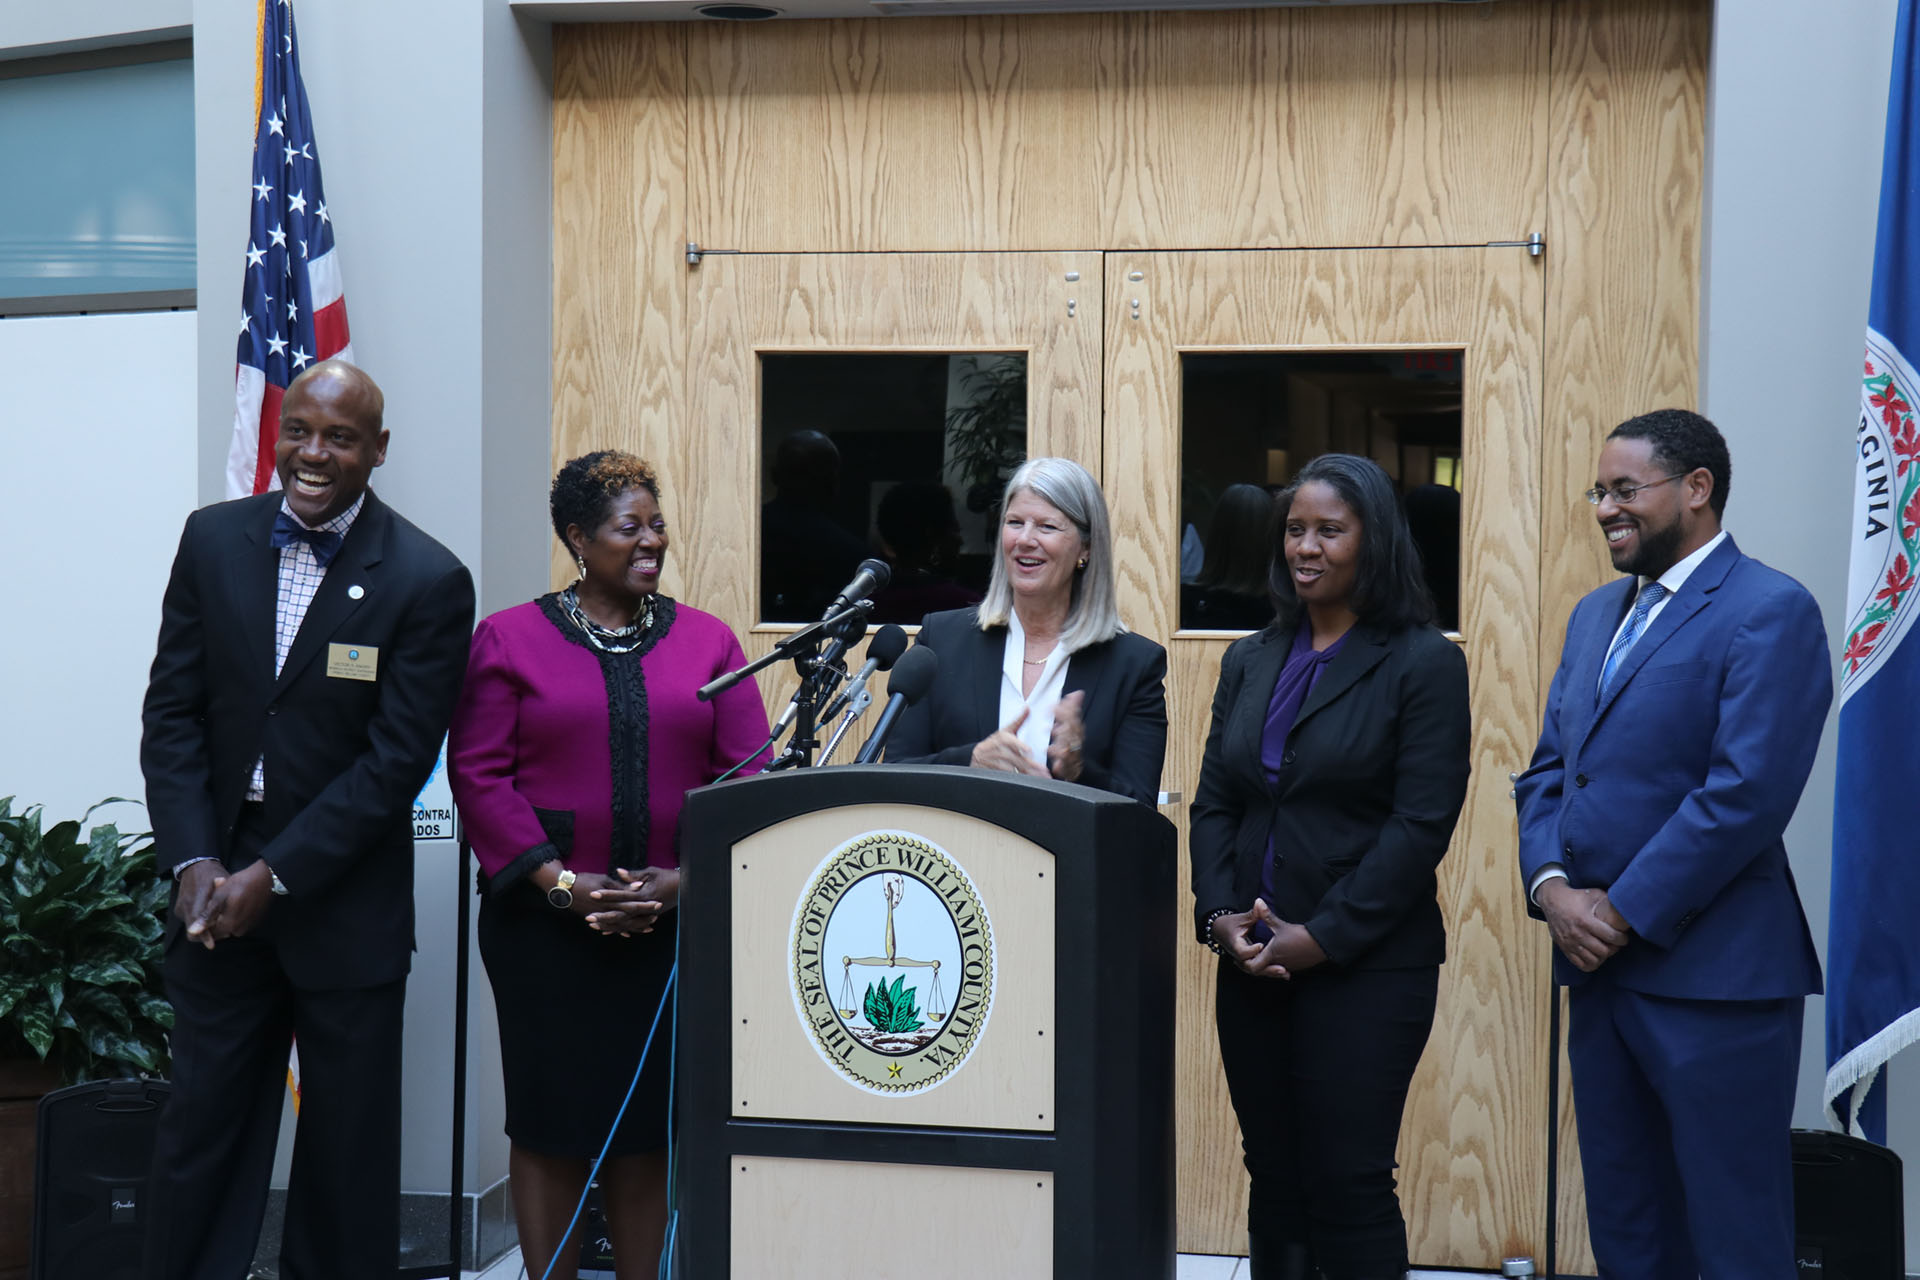 Elected officials speak in Woodbridge